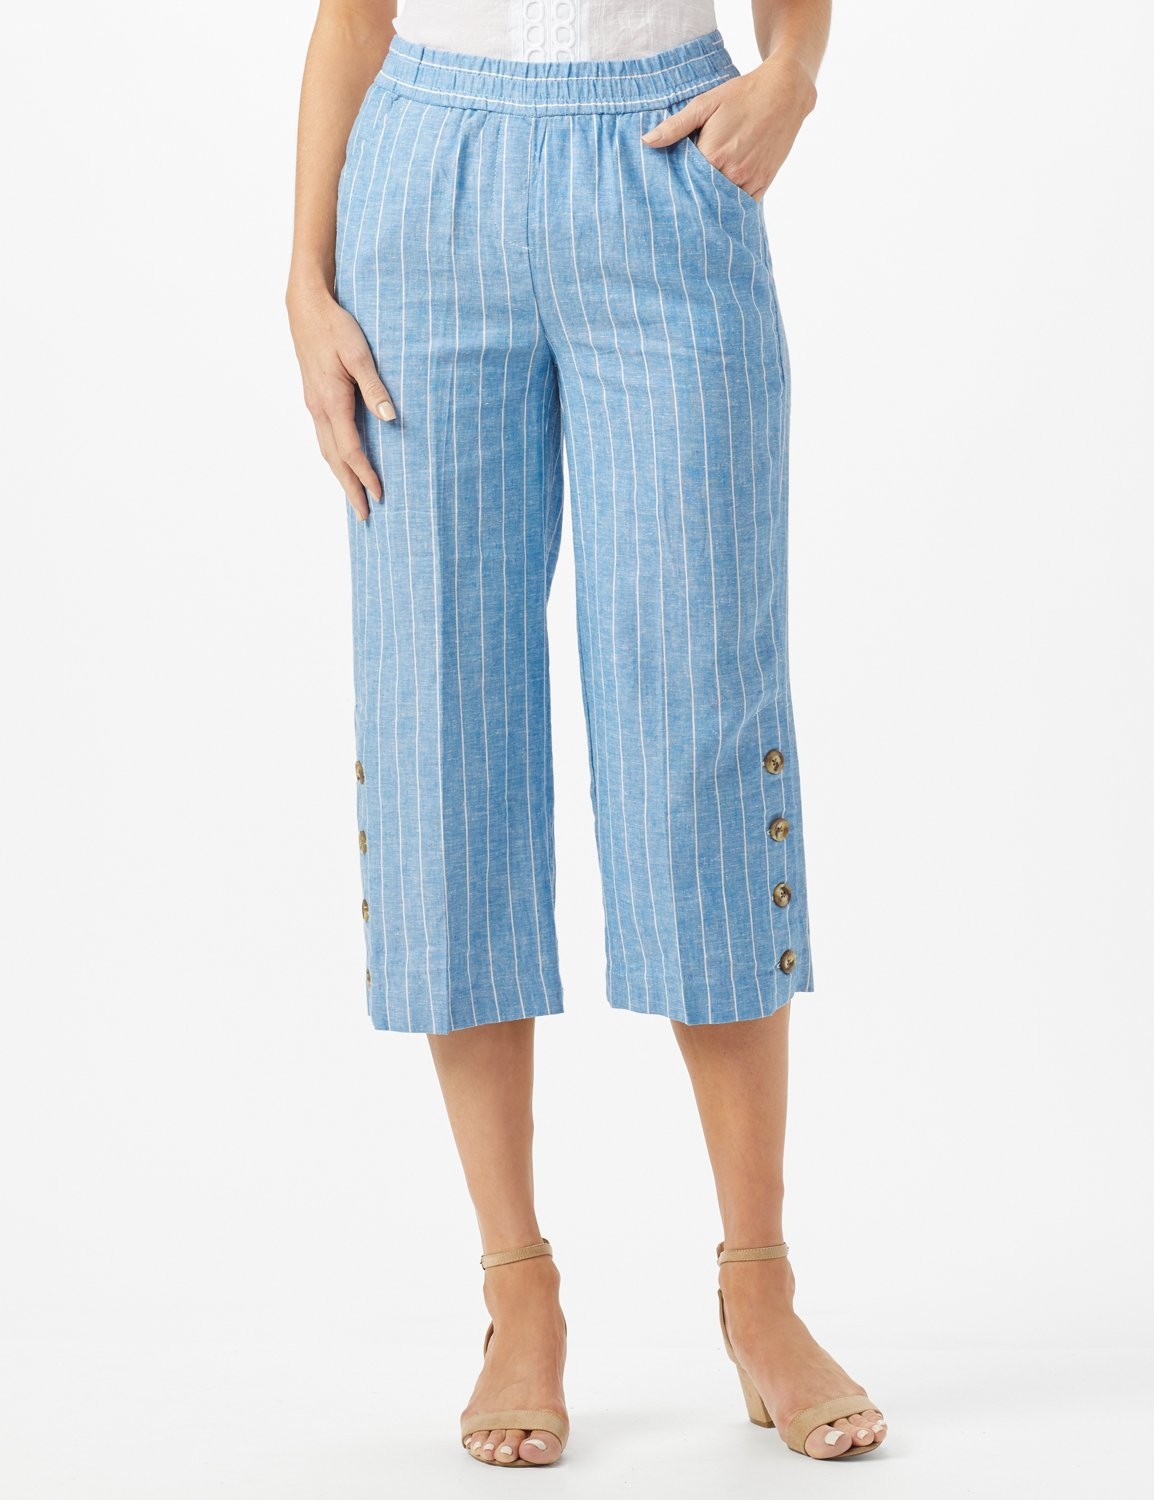 Striped Elastic Waist Crop With Button Detail on Leg -Blue/White - Front